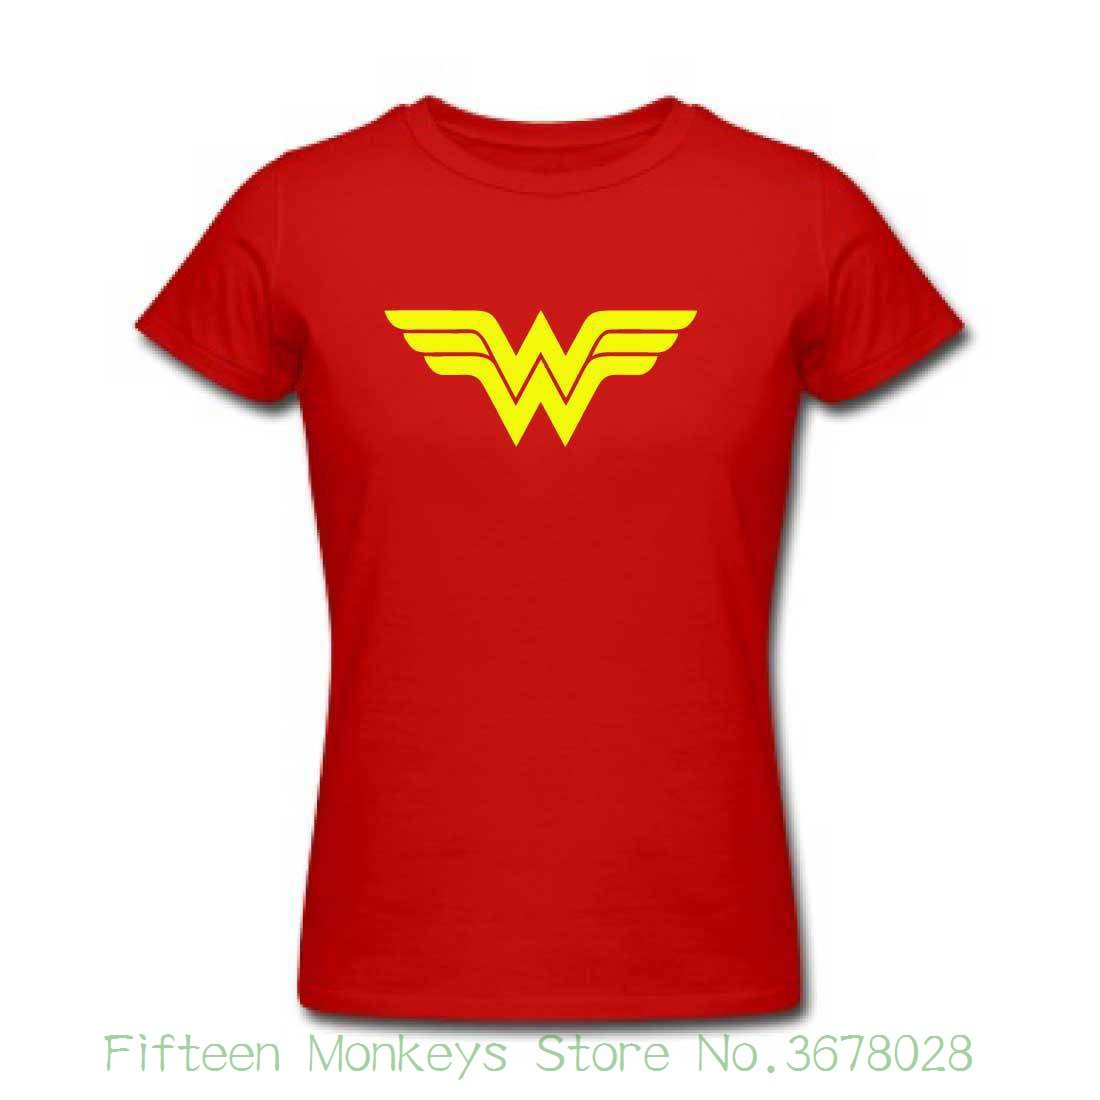 Womens Tee Wonder Woman Tshirt - Womens Ladies Super Hero Costume Party Top Retro Cool 2018 Newest Women Fashion ...